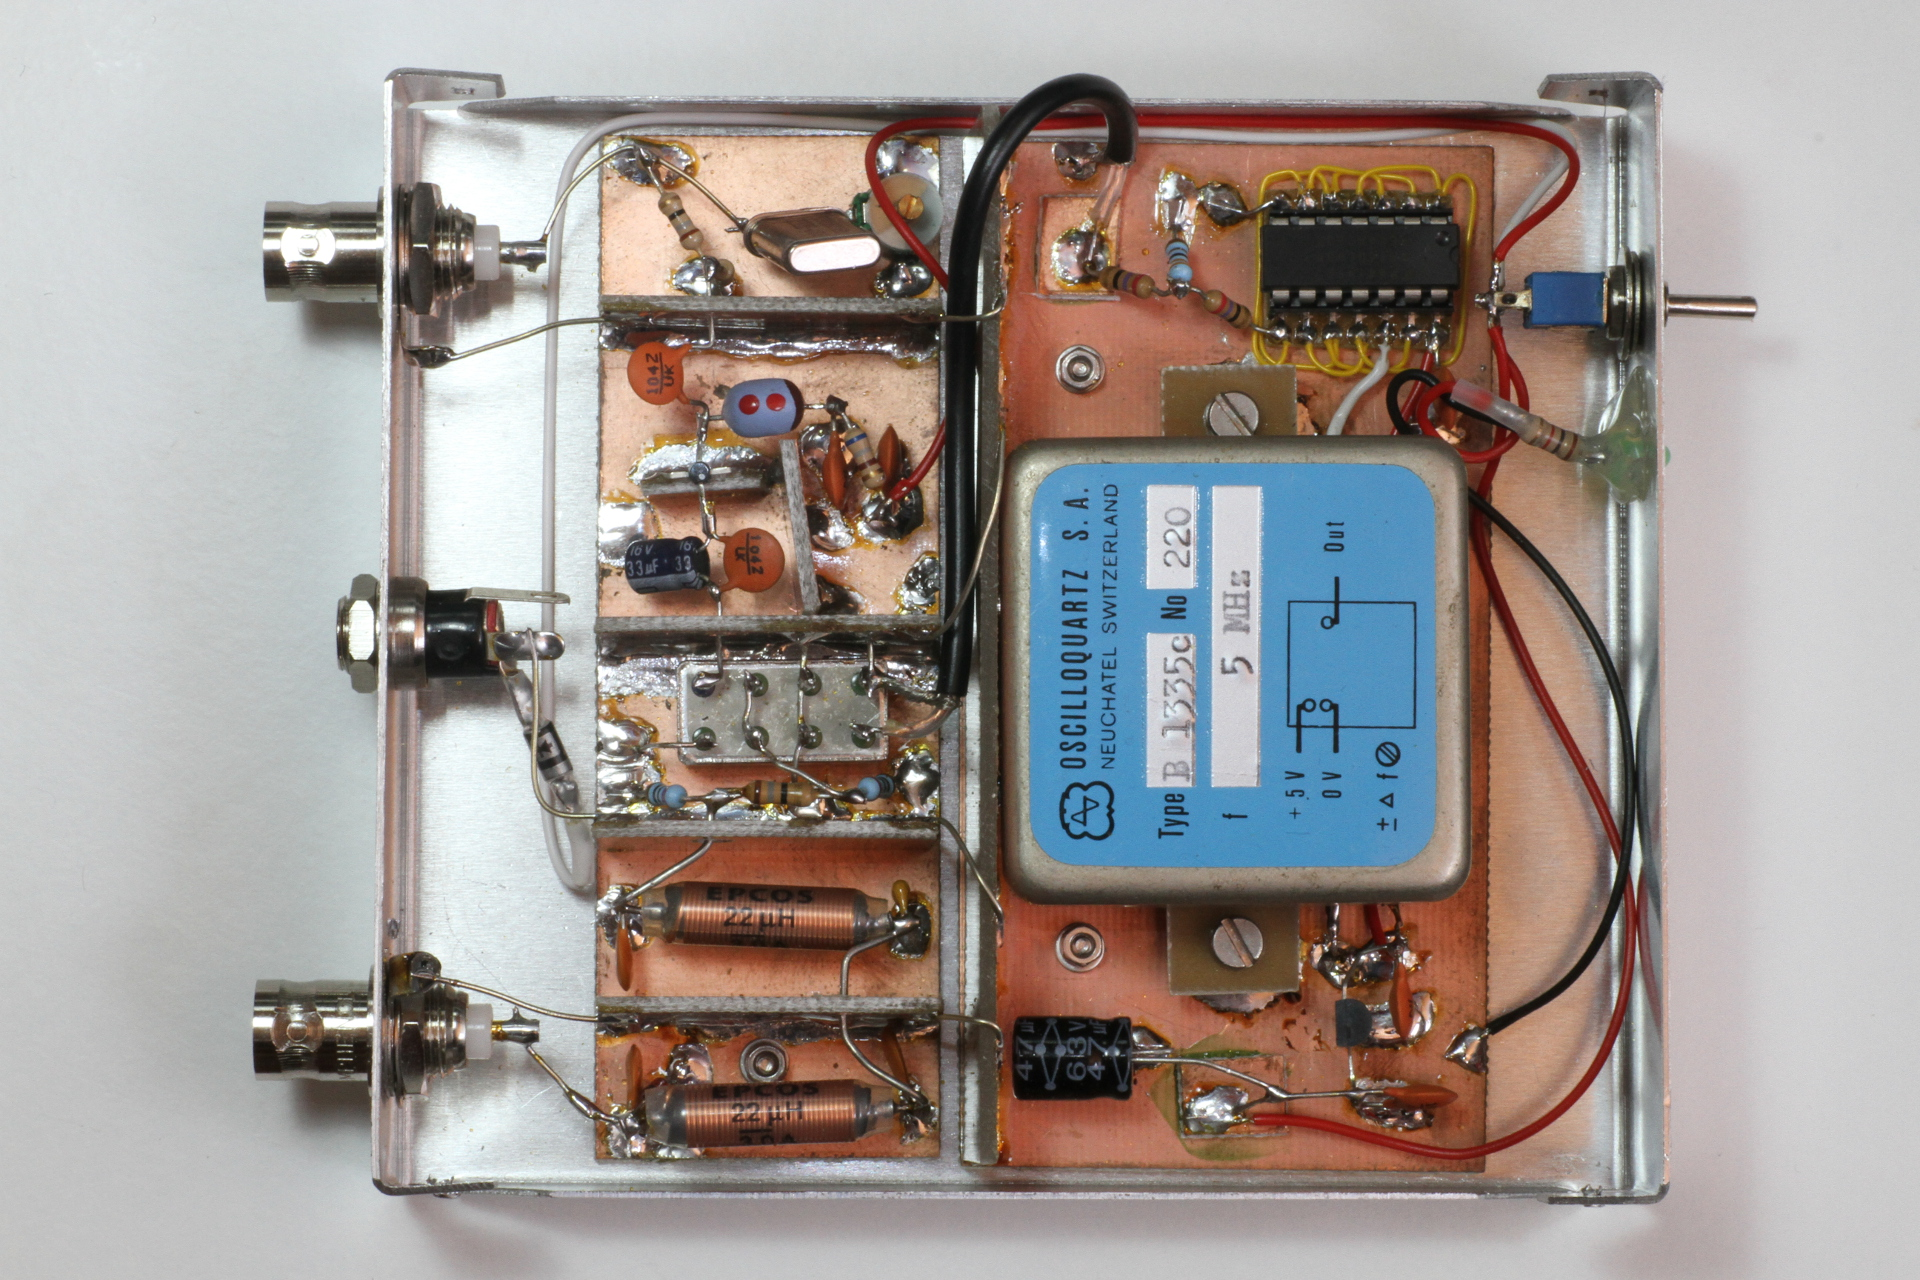 An Up Converter For Receiving Long And Very Waves 5mhz Notch Filter Circuit Diagram Electronic Diagrams Top View Of The Finished Click To Enlarge